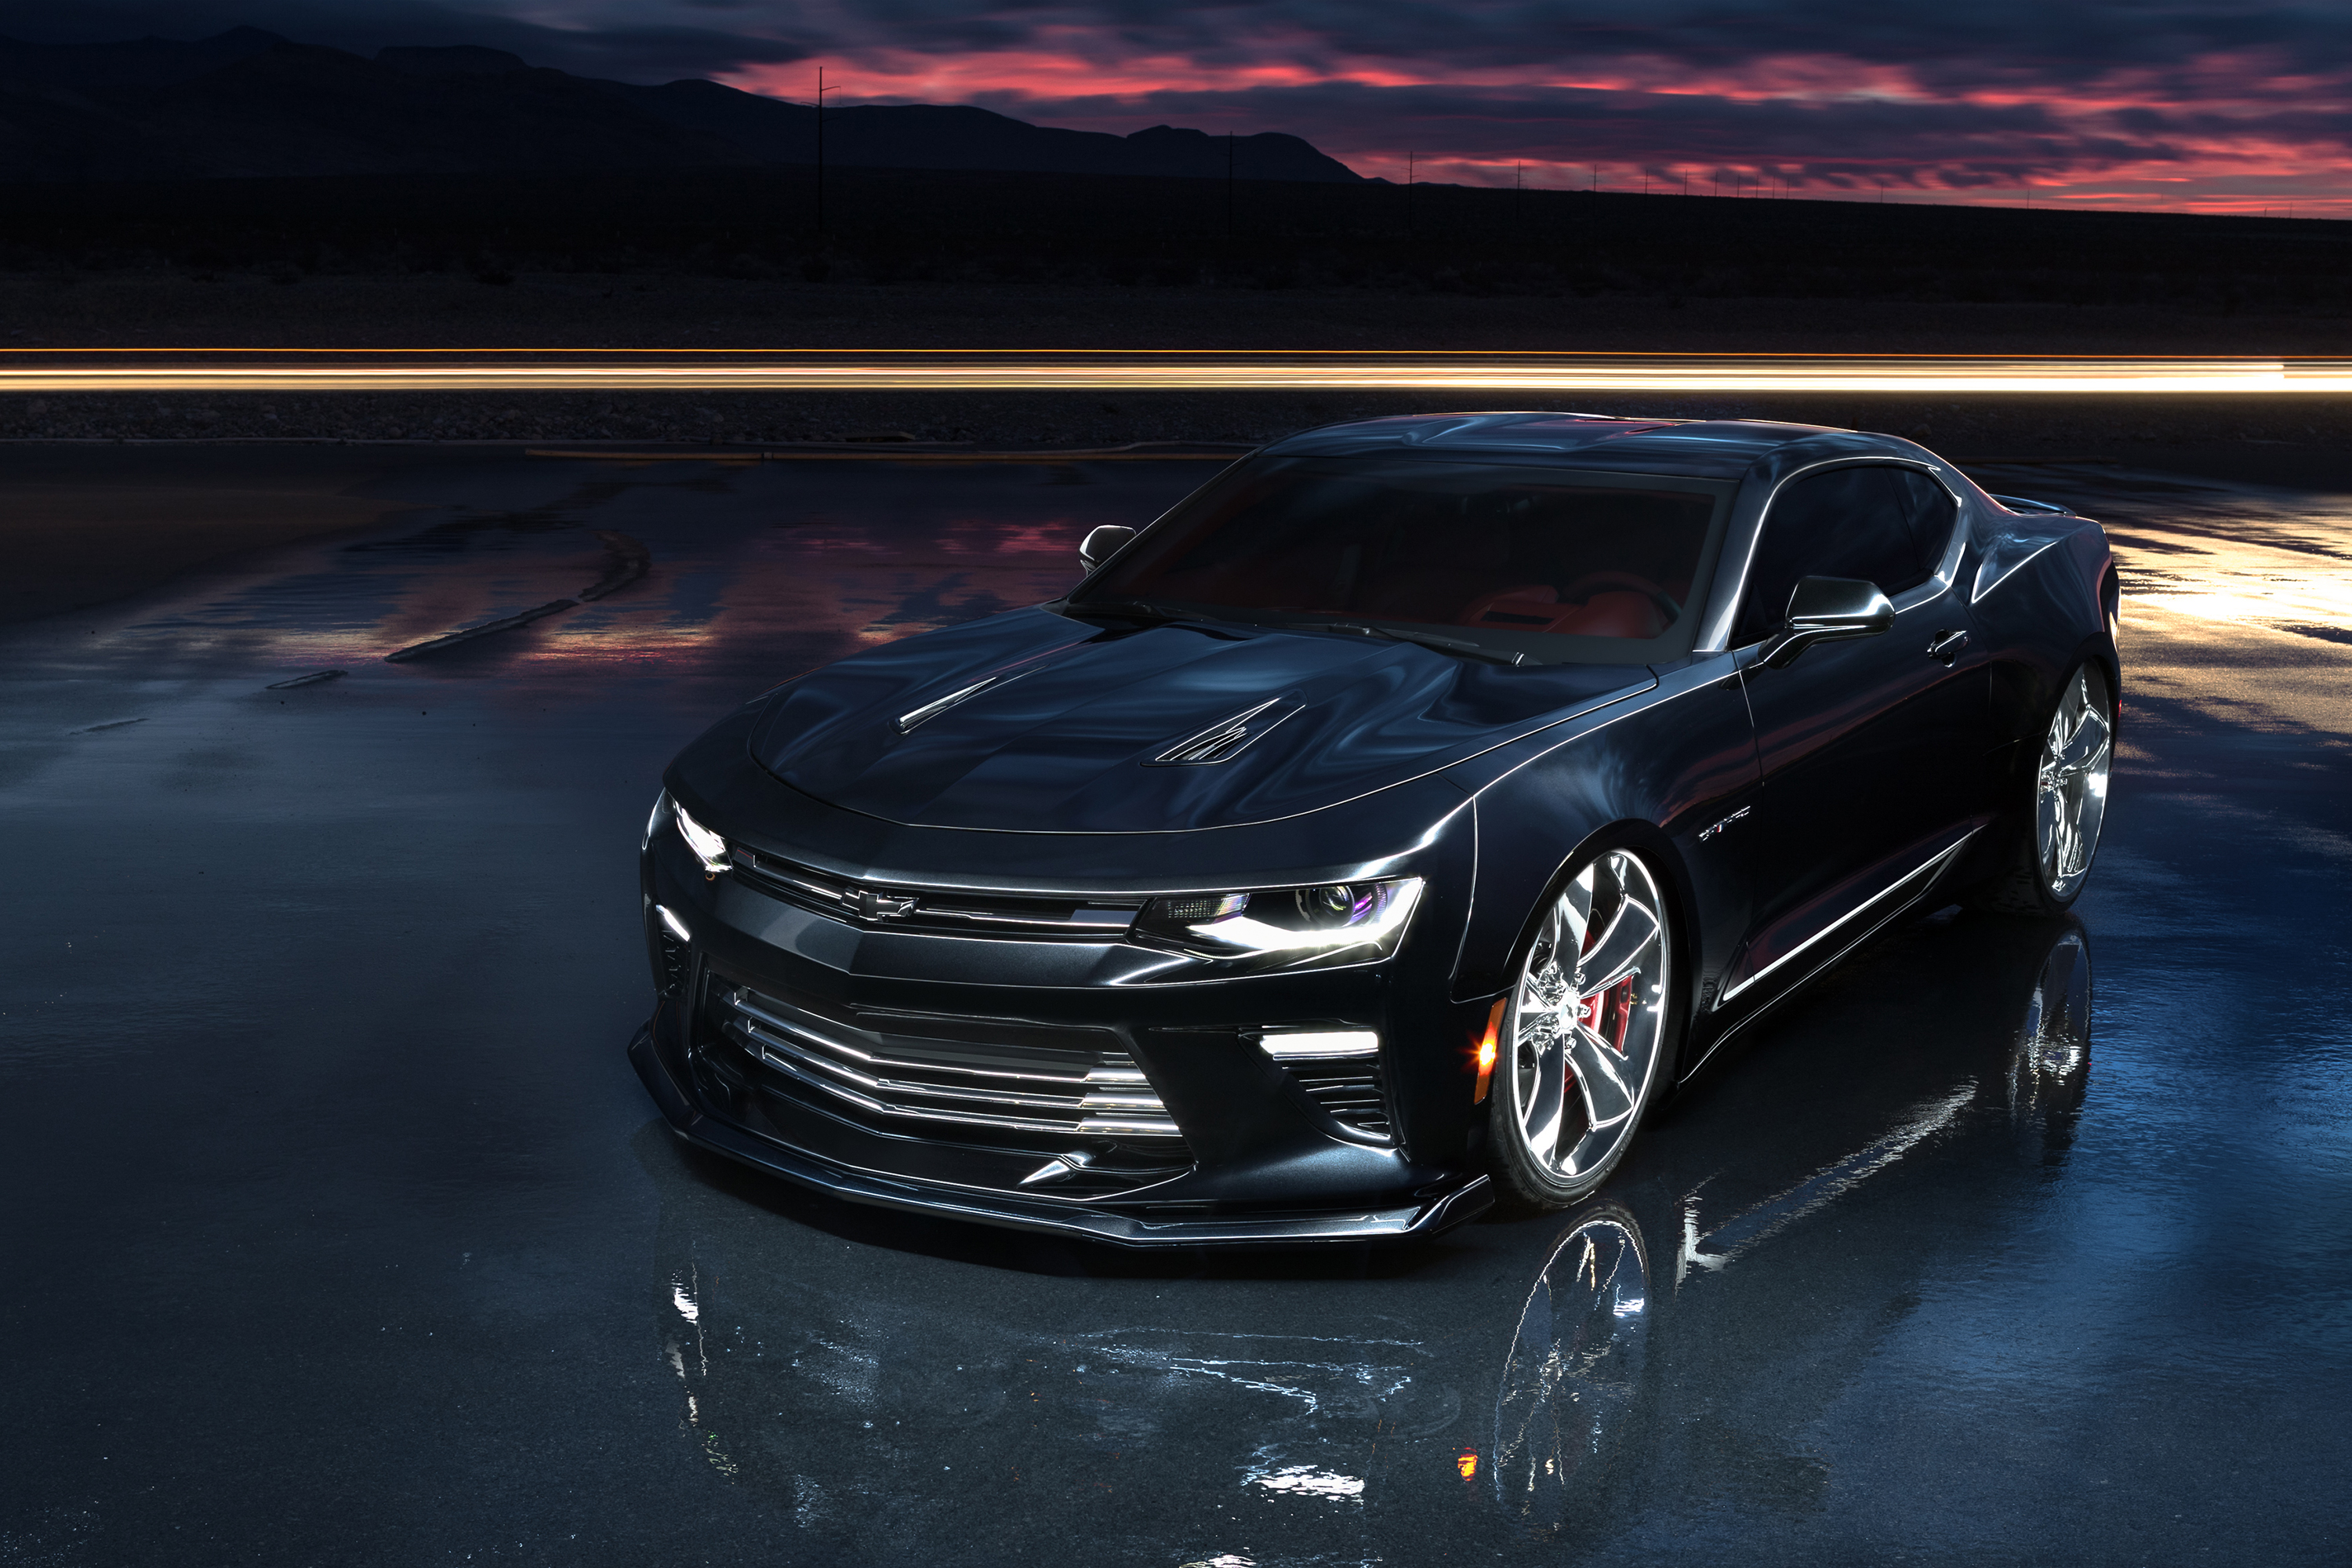 2017 Camaro SS Slammer Concept Is all About Stance